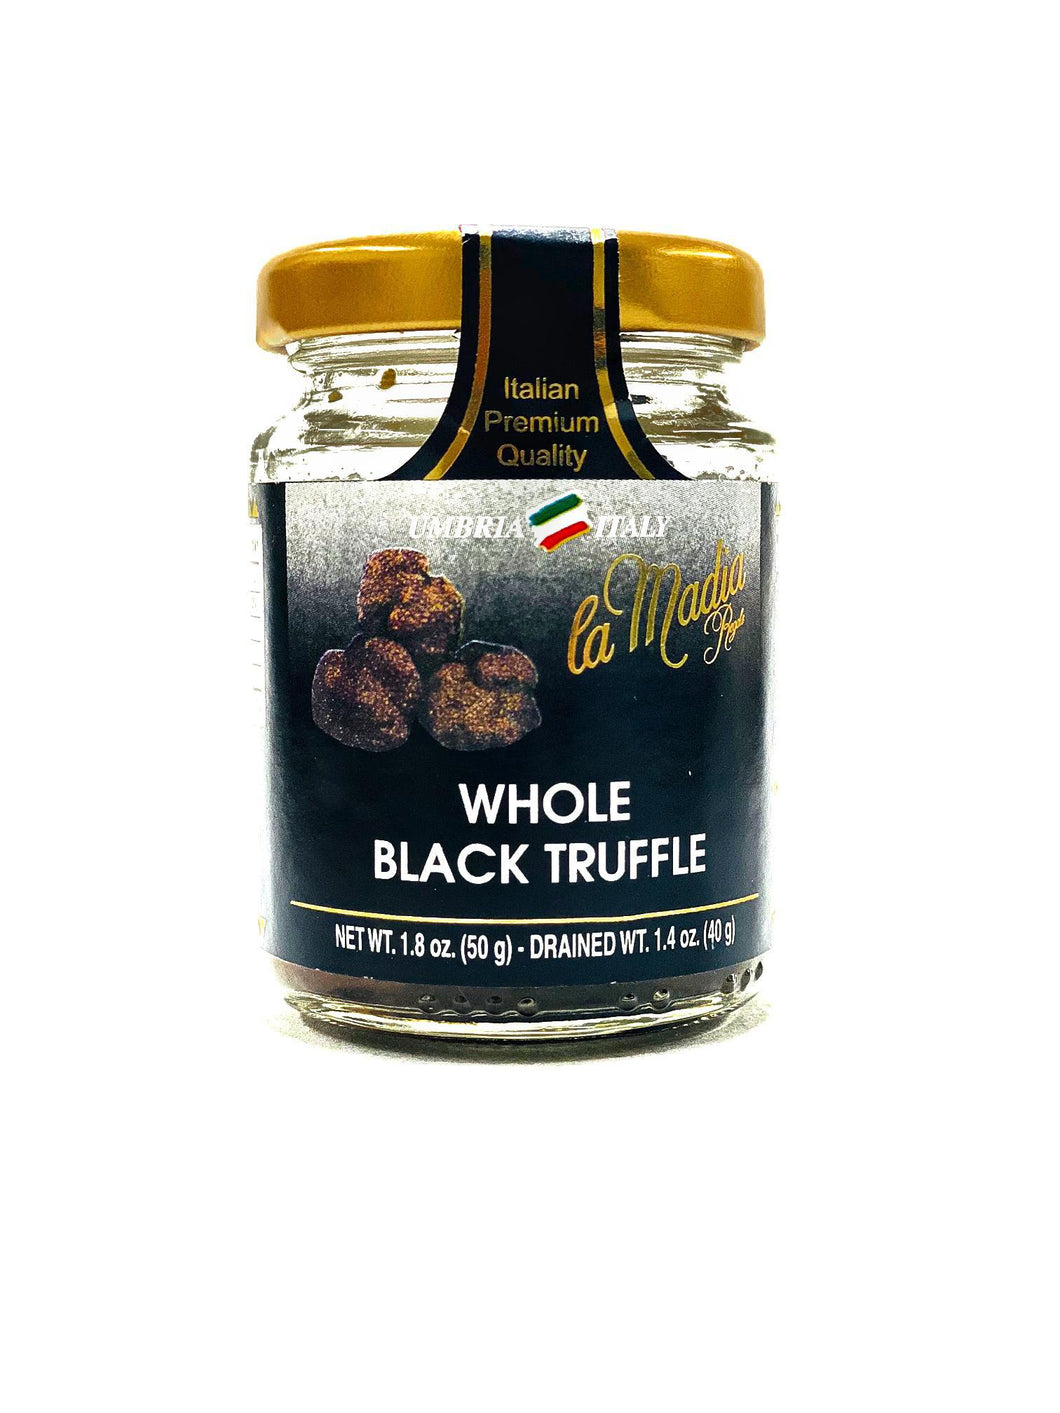 La Madia Regale Whole Black Truffle, 1.8 oz